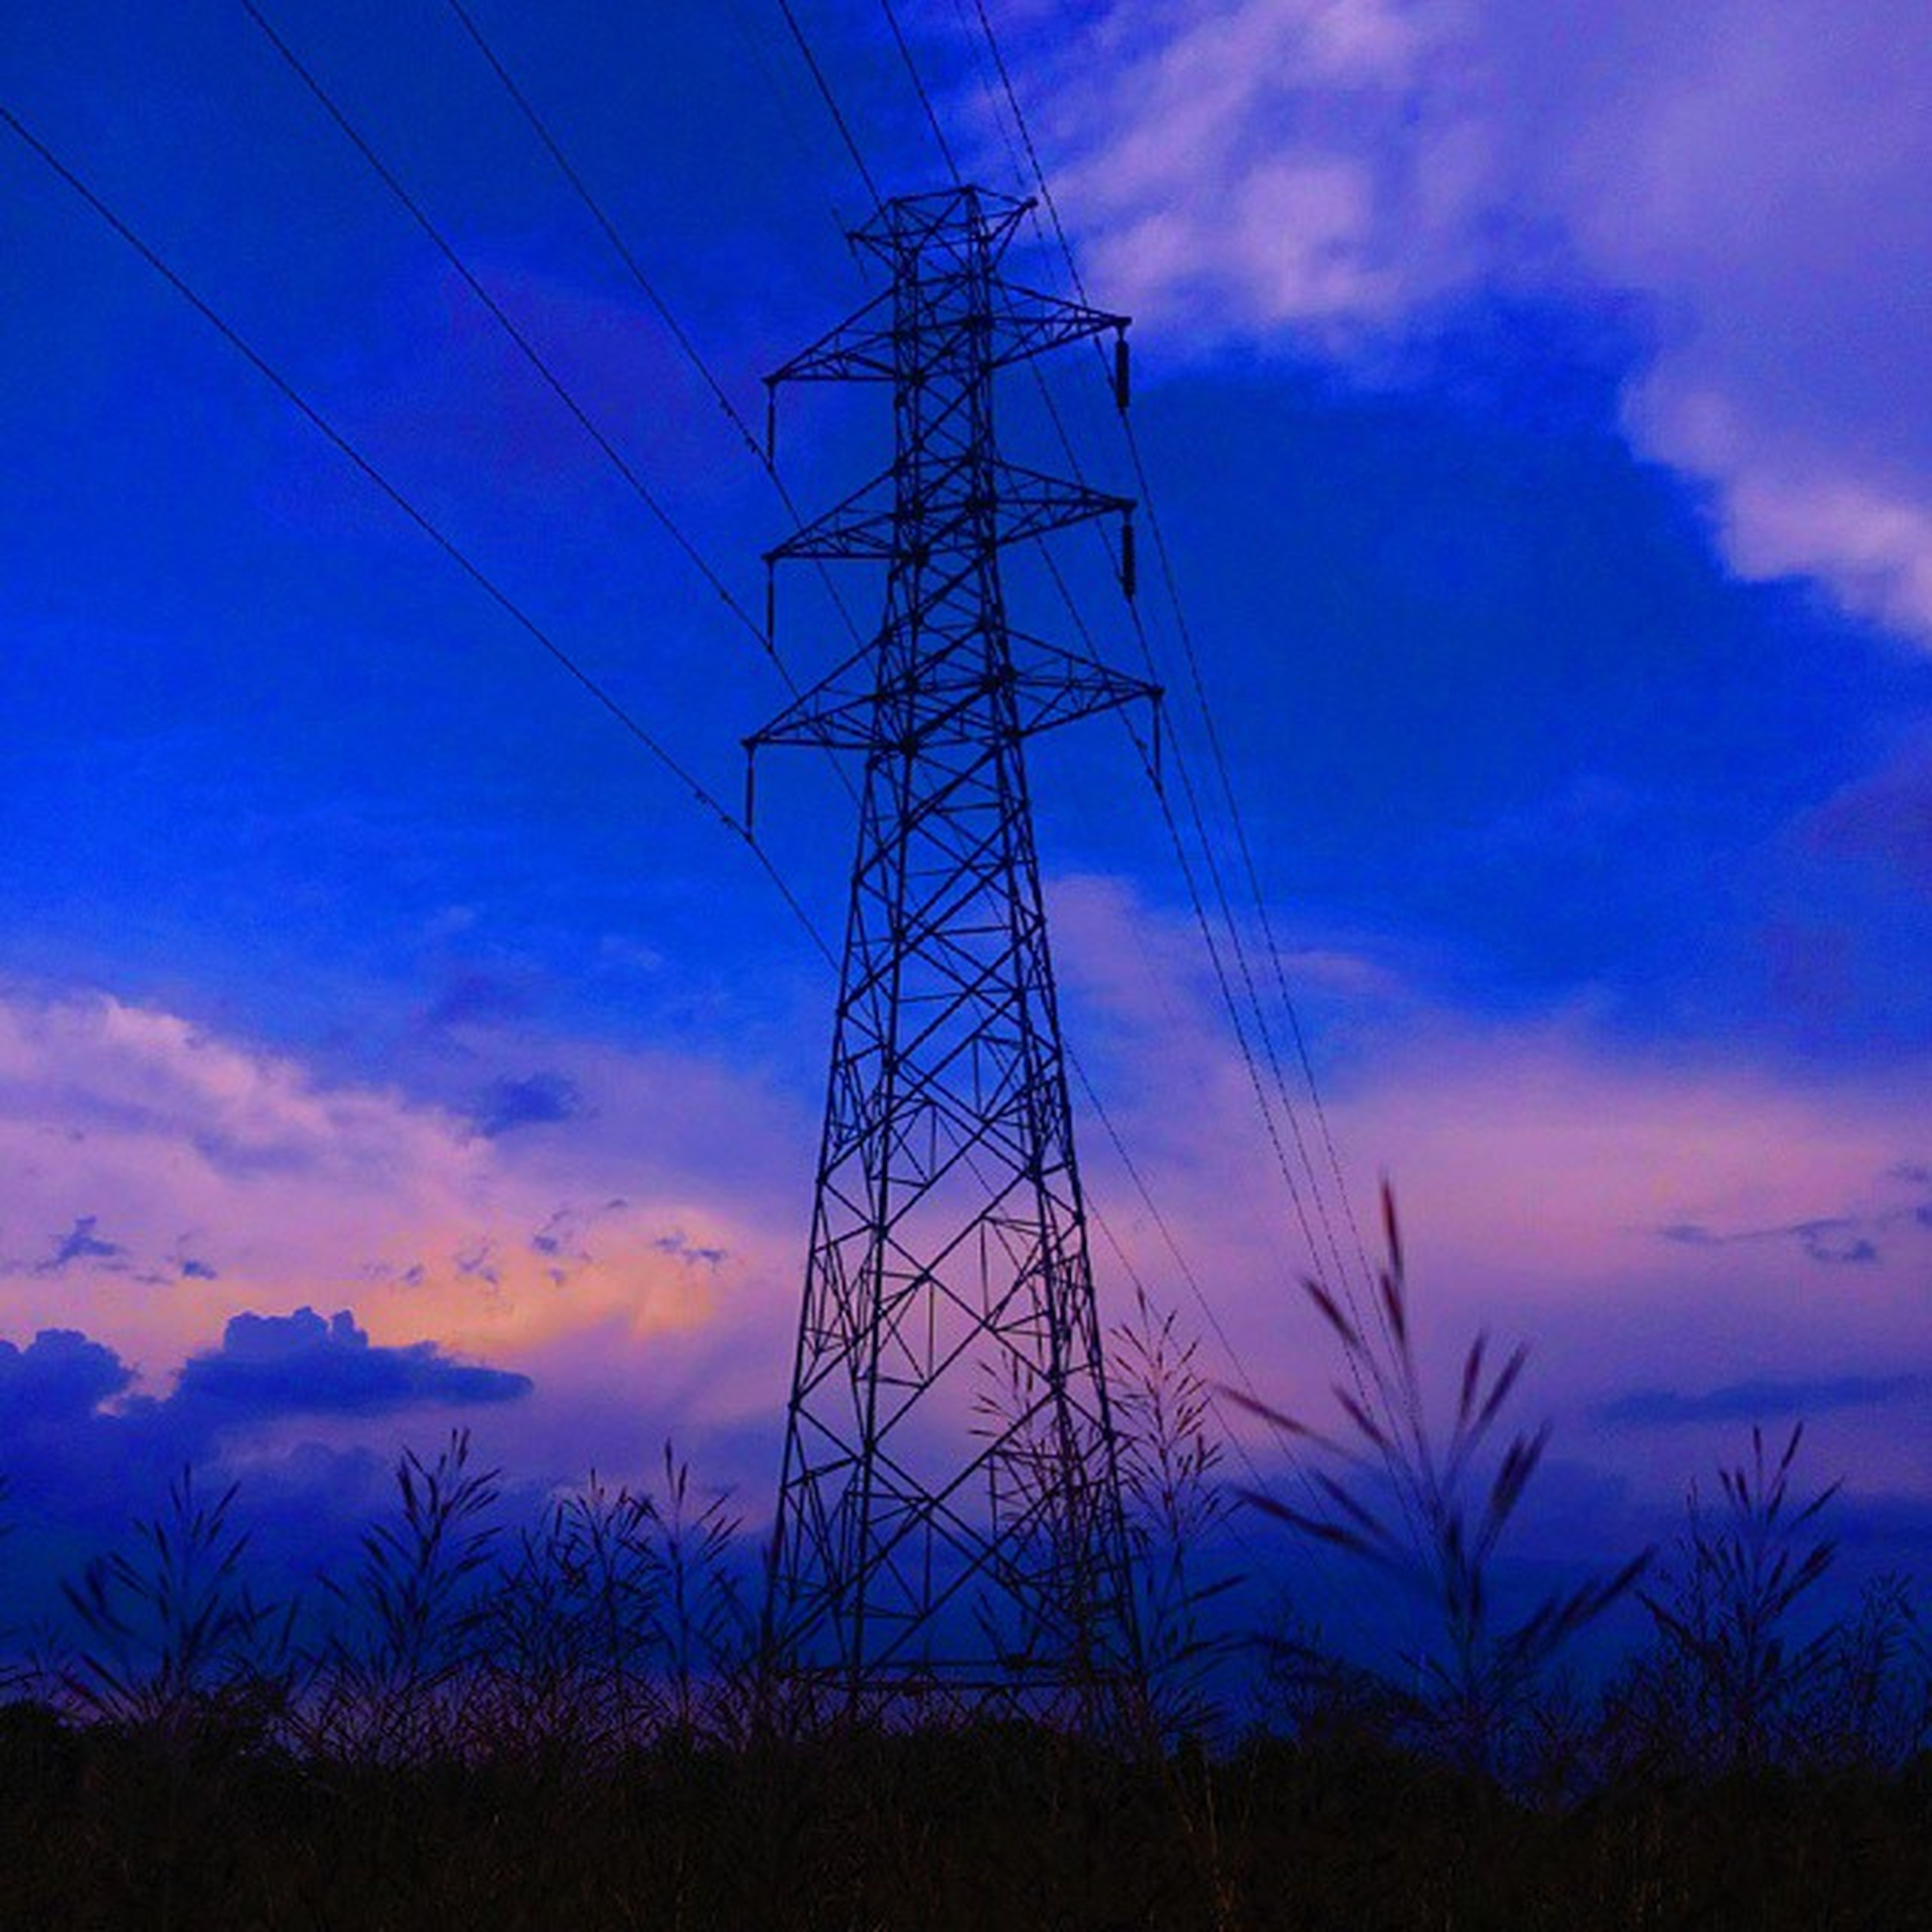 power line, electricity pylon, power supply, electricity, low angle view, fuel and power generation, connection, sky, cable, silhouette, technology, blue, sunset, cloud - sky, cloud, power cable, dusk, electricity tower, nature, outdoors